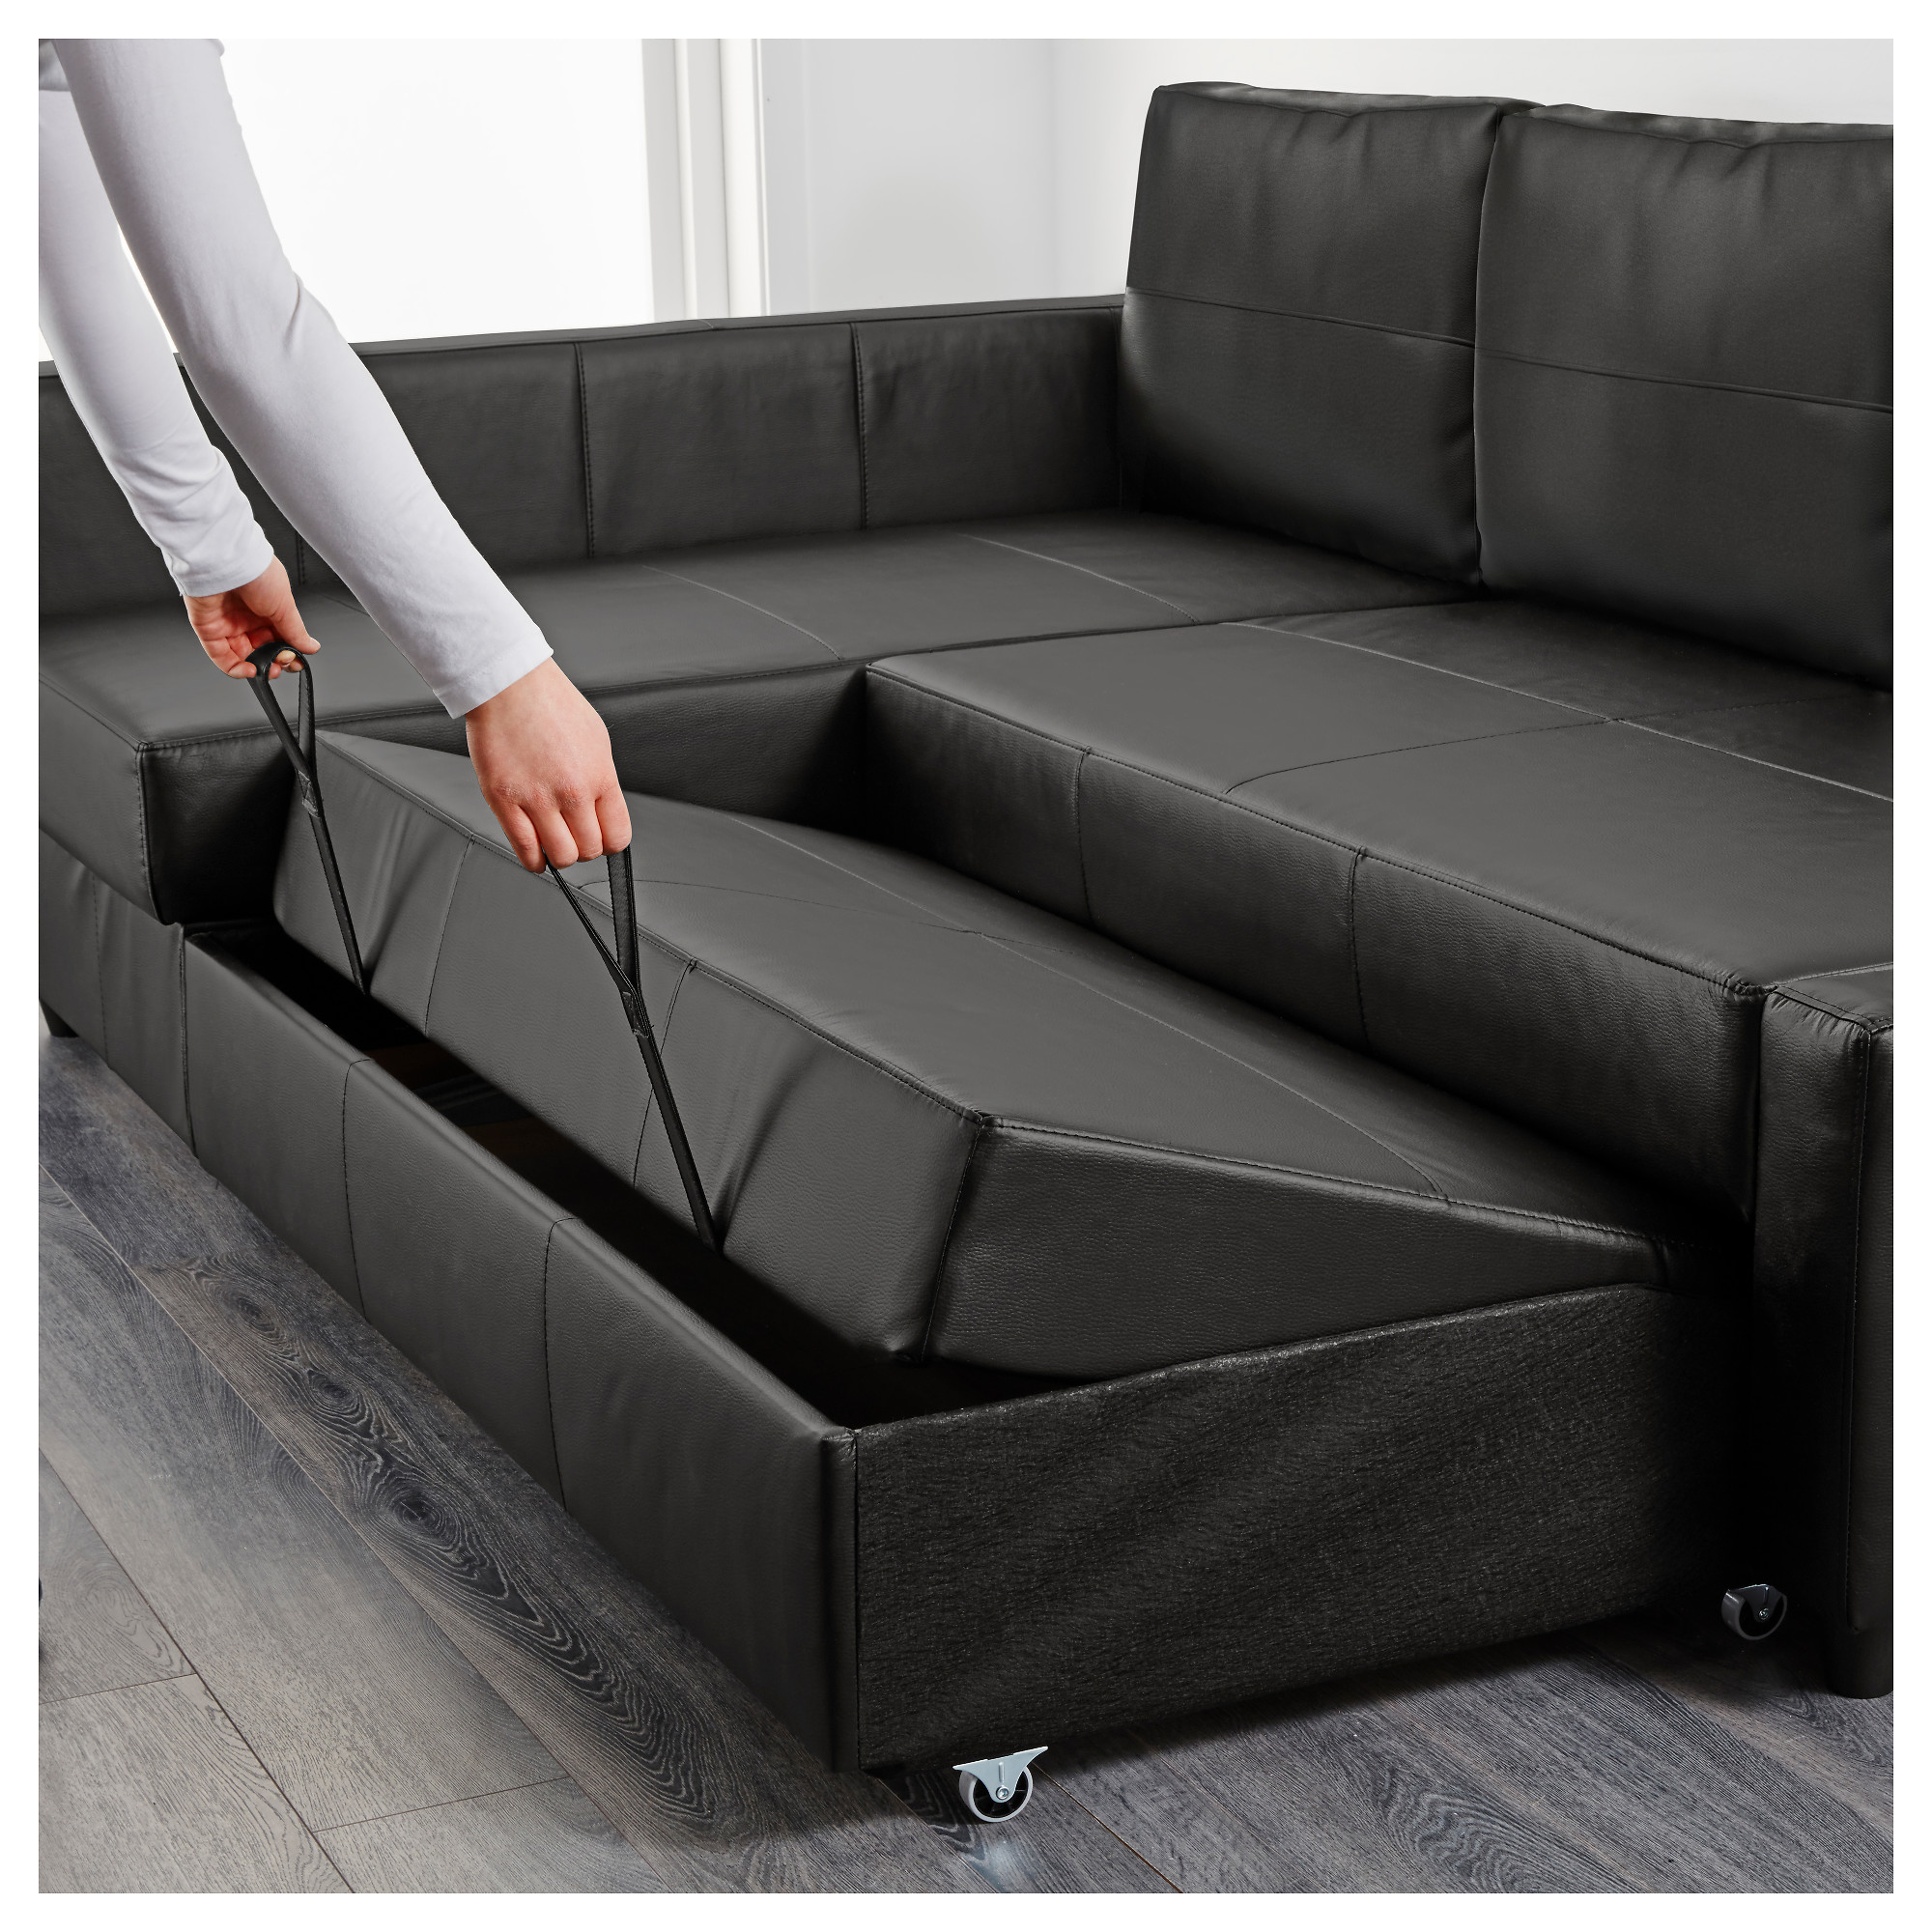 Sofabett ikea  FRIHETEN Corner sofa-bed with storage - Skiftebo dark gray - IKEA